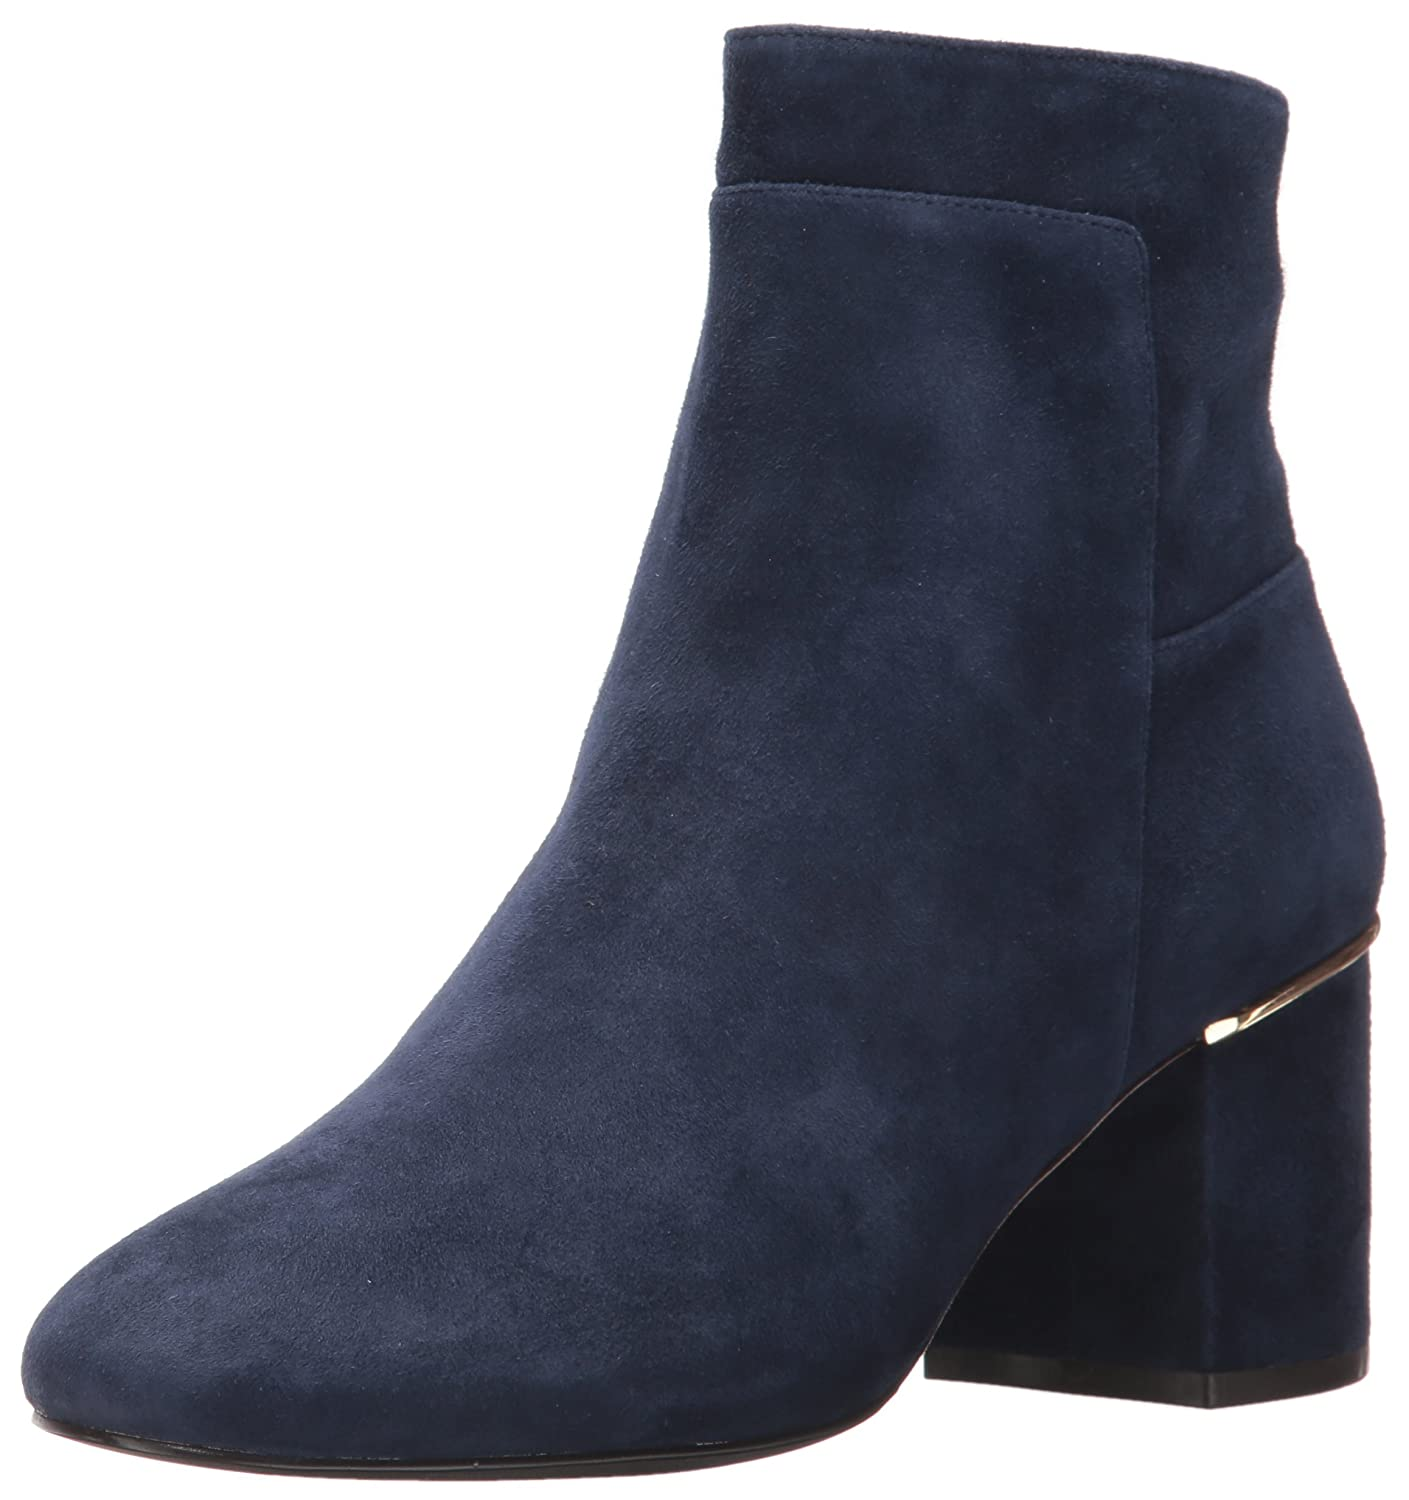 Cole Haan Women's Arden Grand Bootie Ankle Boot B01MR9FETD 10.5 B(M) US|Marine Blue